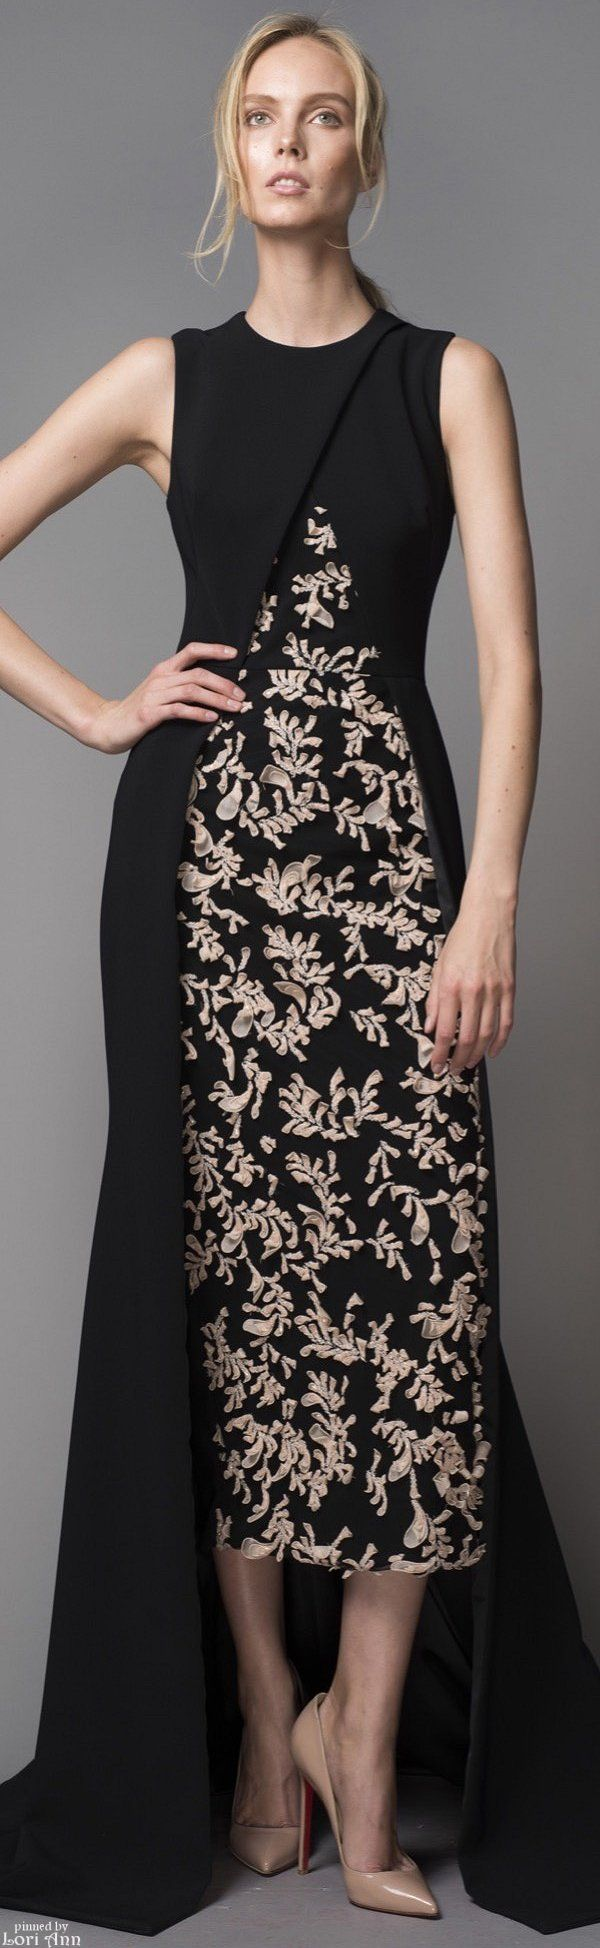 Bibhu Mohapatra Resort 2016 black maxi dress women fashion outfit clothing style apparel RORESS closet ideas https://womenslittletips.blogspot.com  http://amzn.to/2l8lU3R